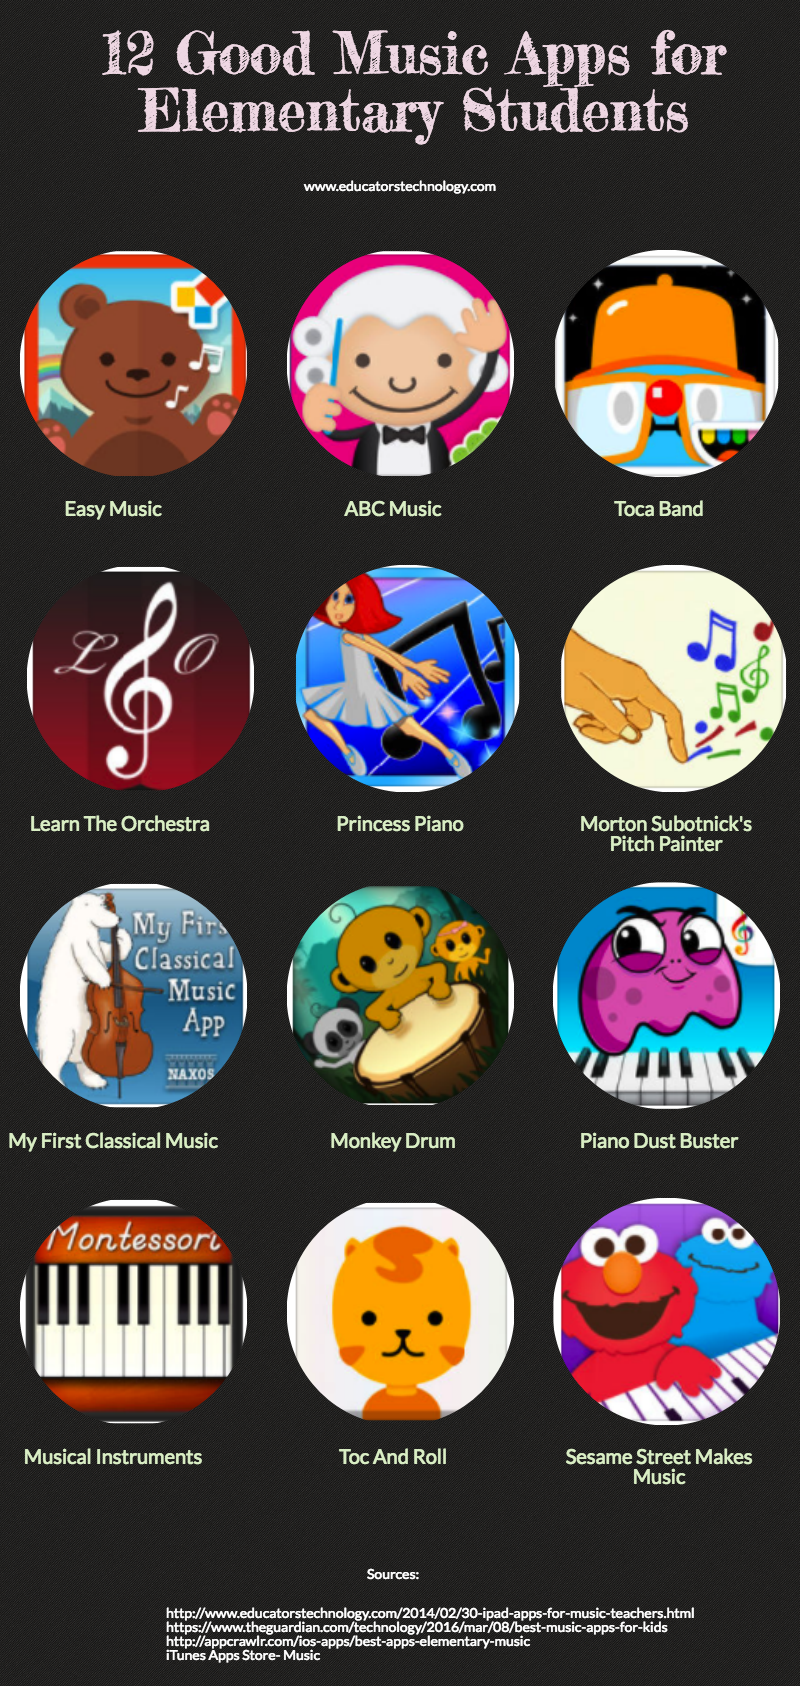 12 Good Music Apps for Elementary Students | Educational